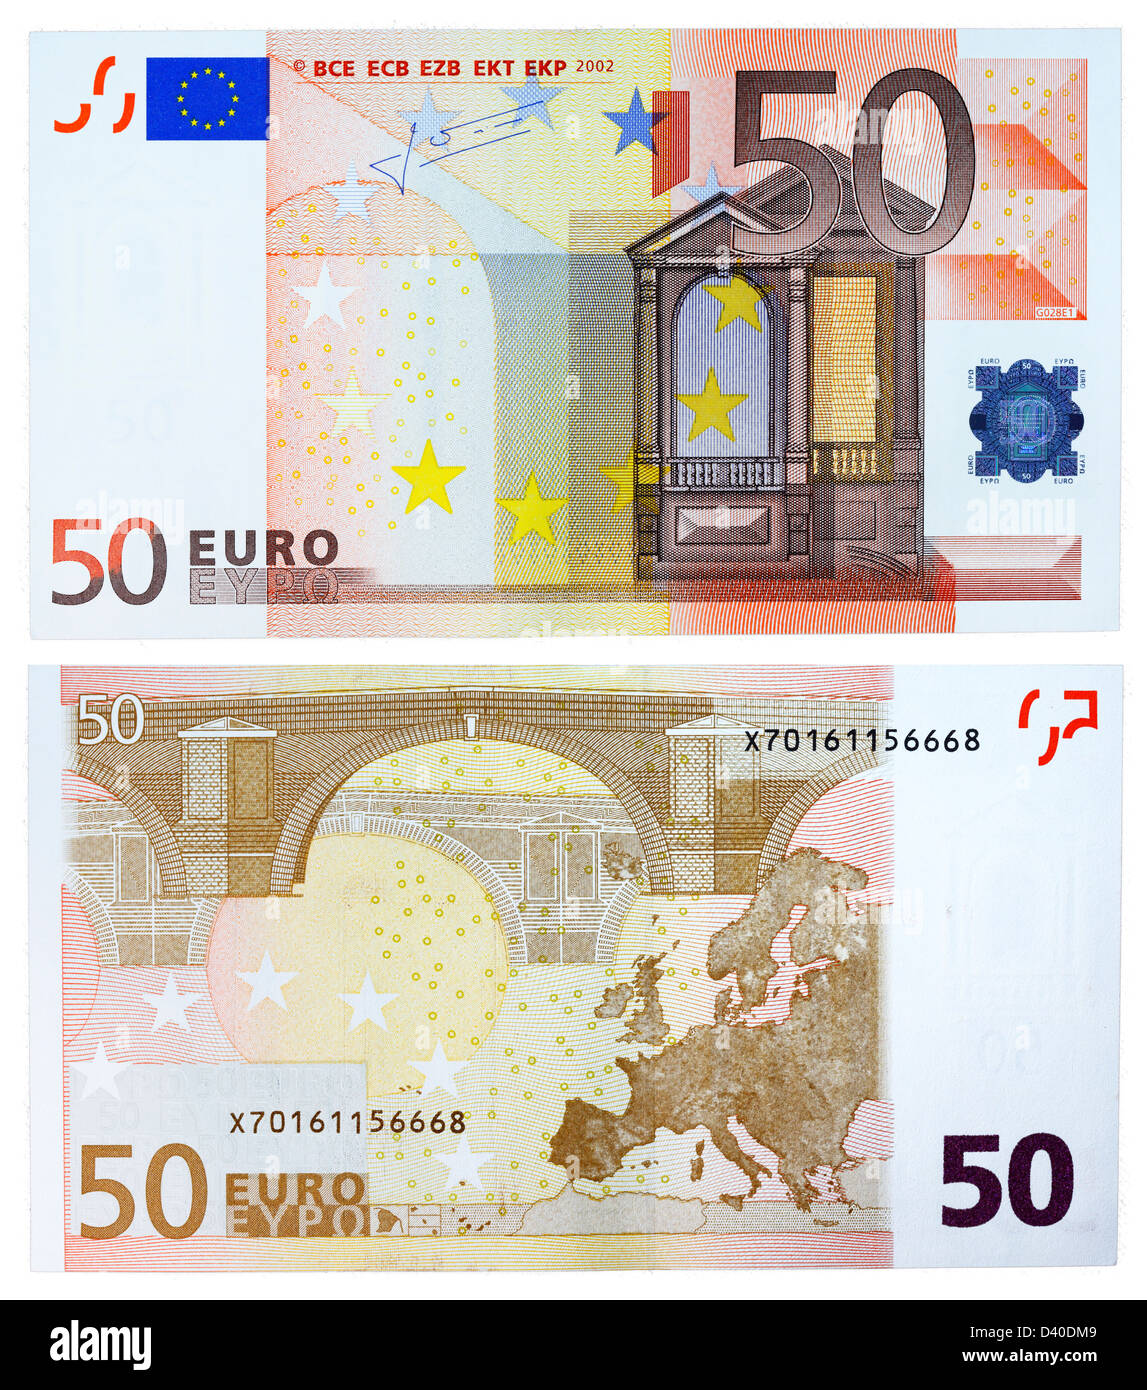 50 Euro banknote, Renaissance architecture and bridge, 2002 - Stock Image